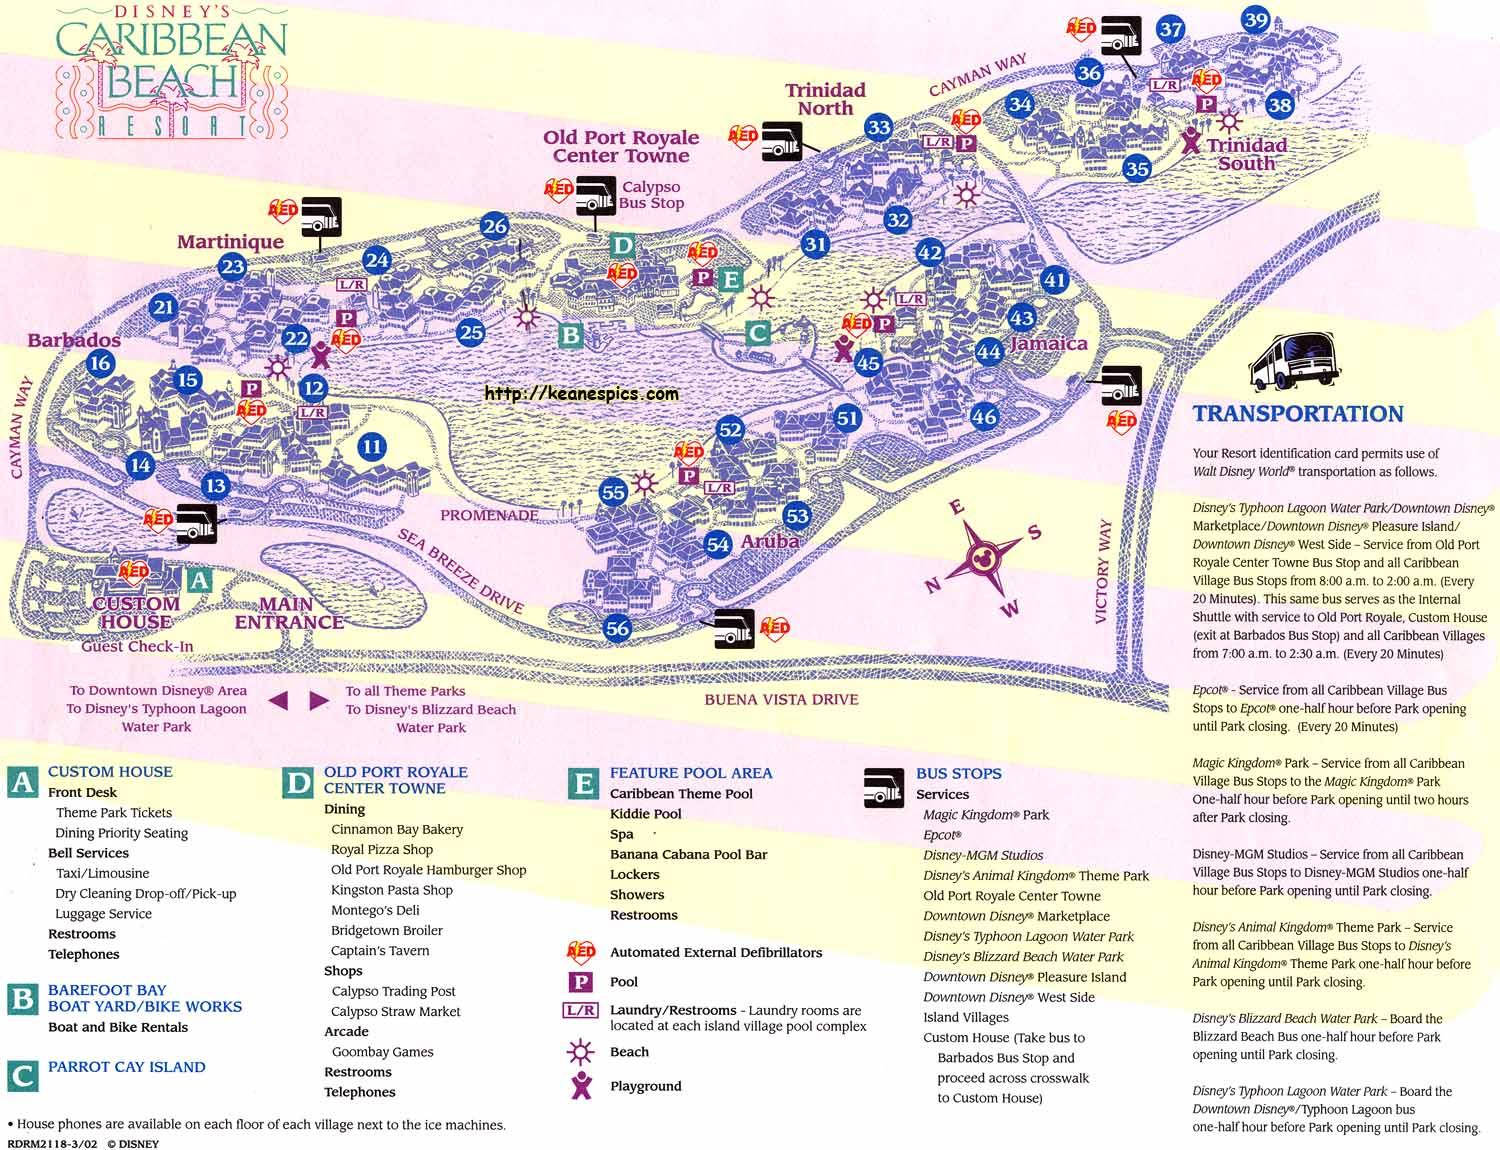 Keane's Picture Web Site - Map of Disney's Caribbean Beach ...